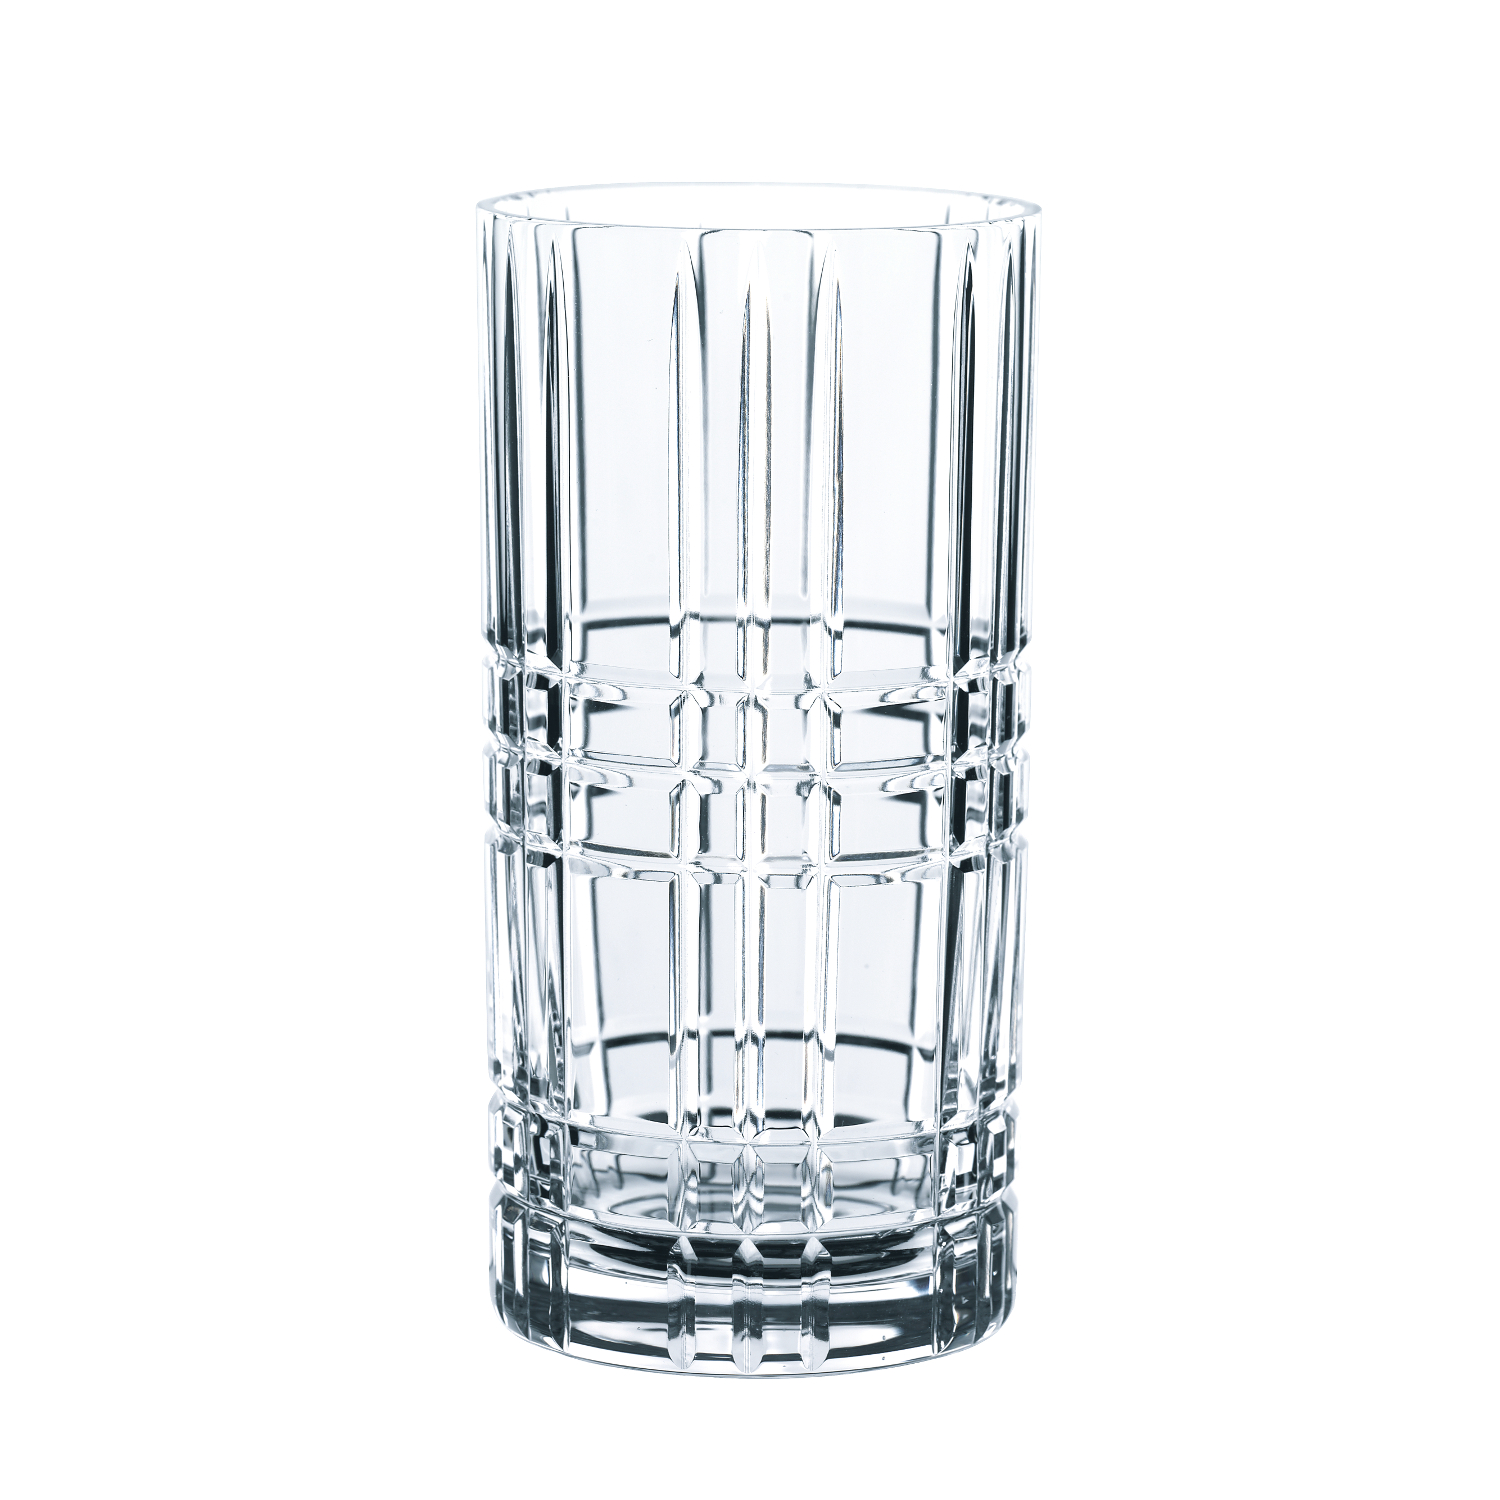 Nachtmann Square Crystal 15.6 Ounce Longdrink Tumbler, Set of 4